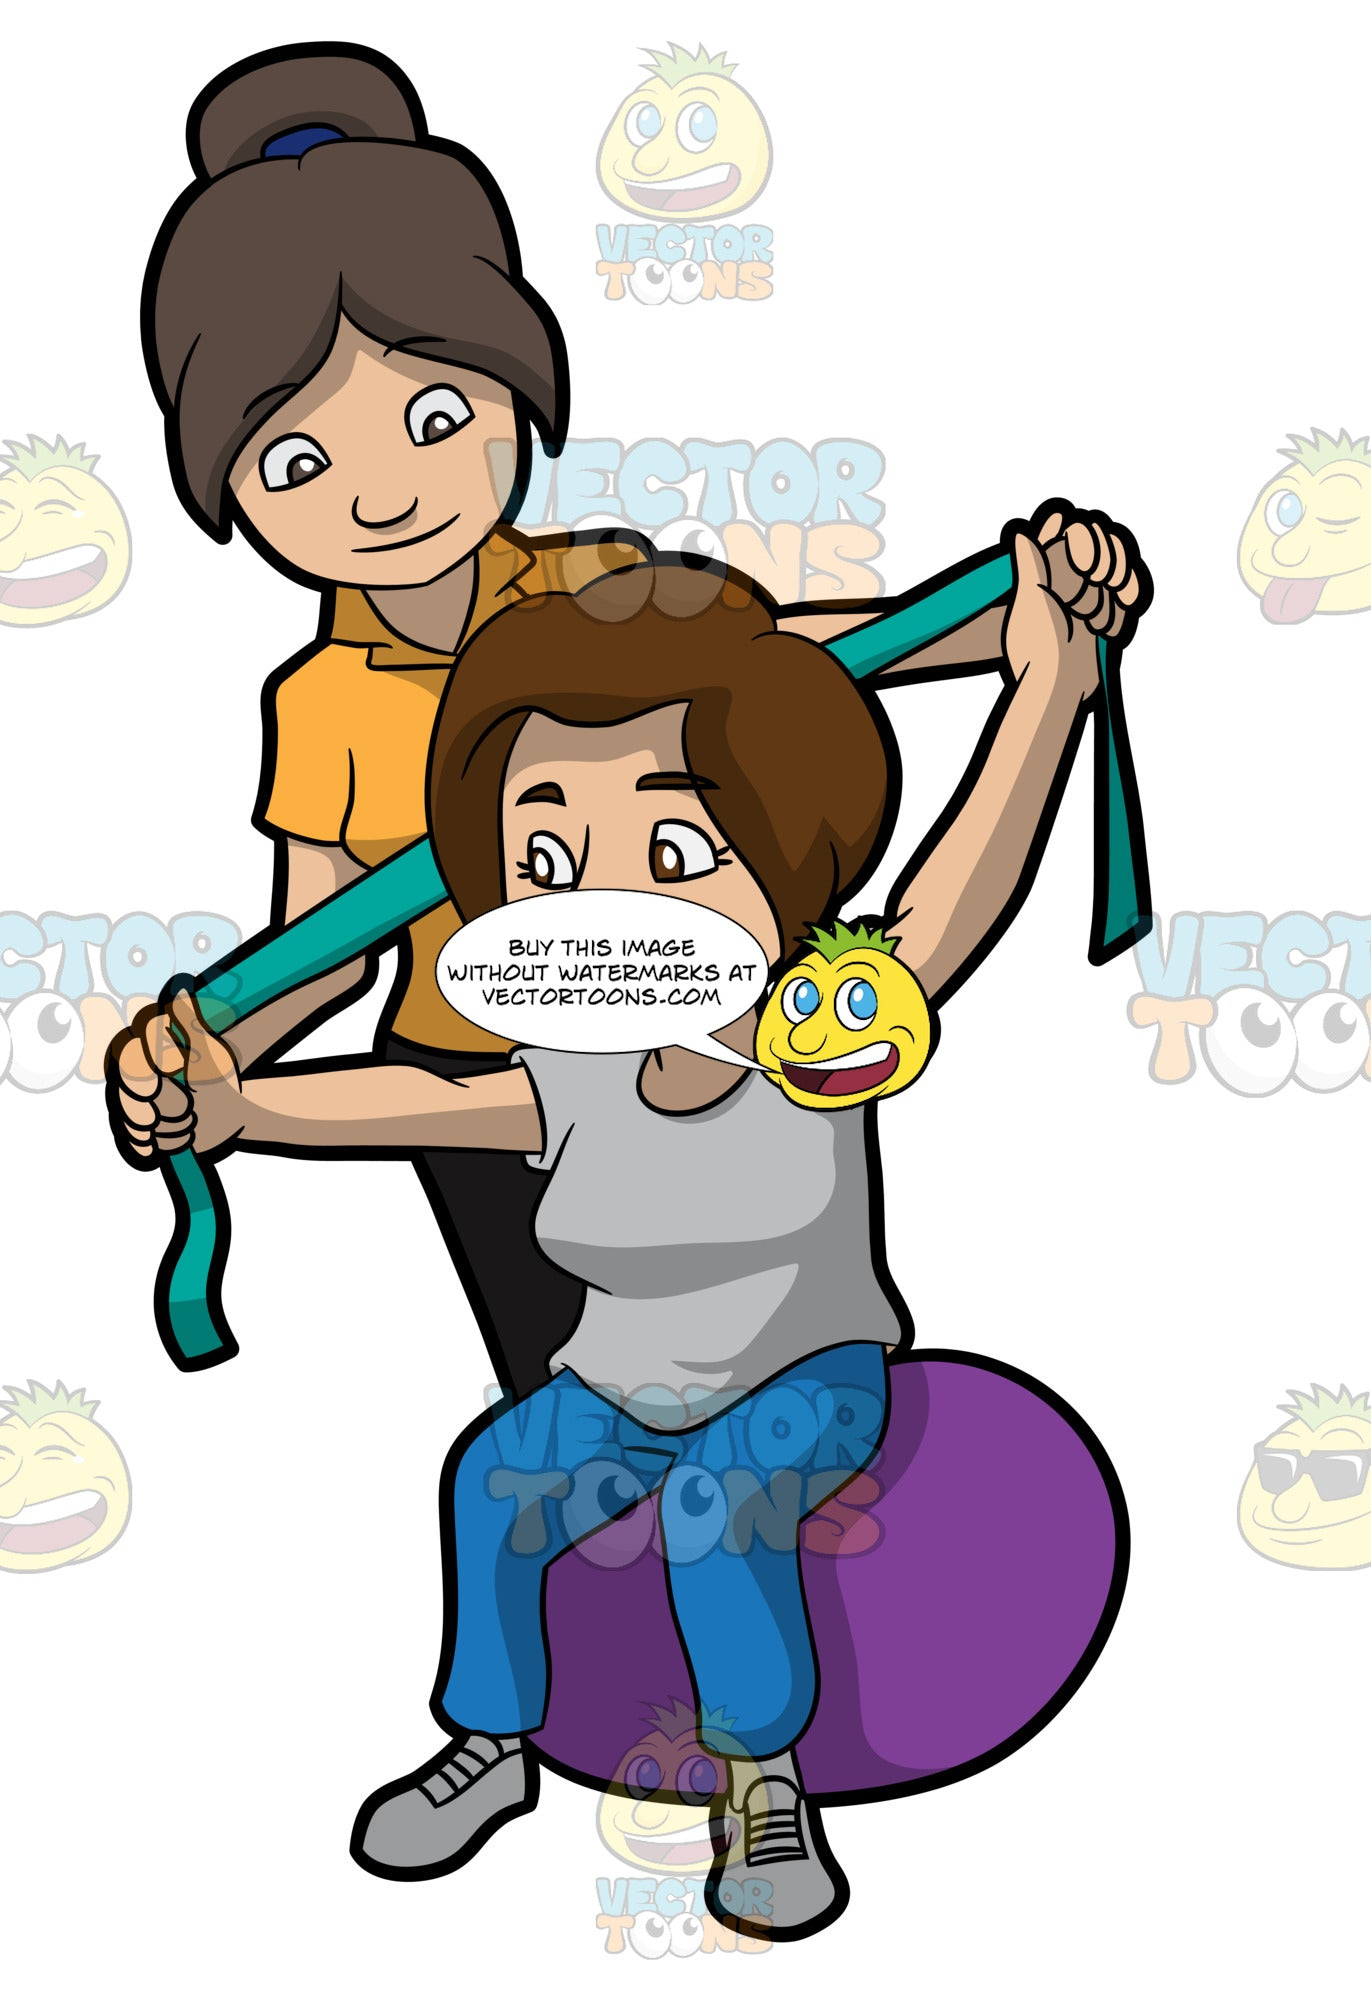 A Female Physical Therapist Helping A Patient Stretch Her Arms Clipart Cartoons By Vectortoons